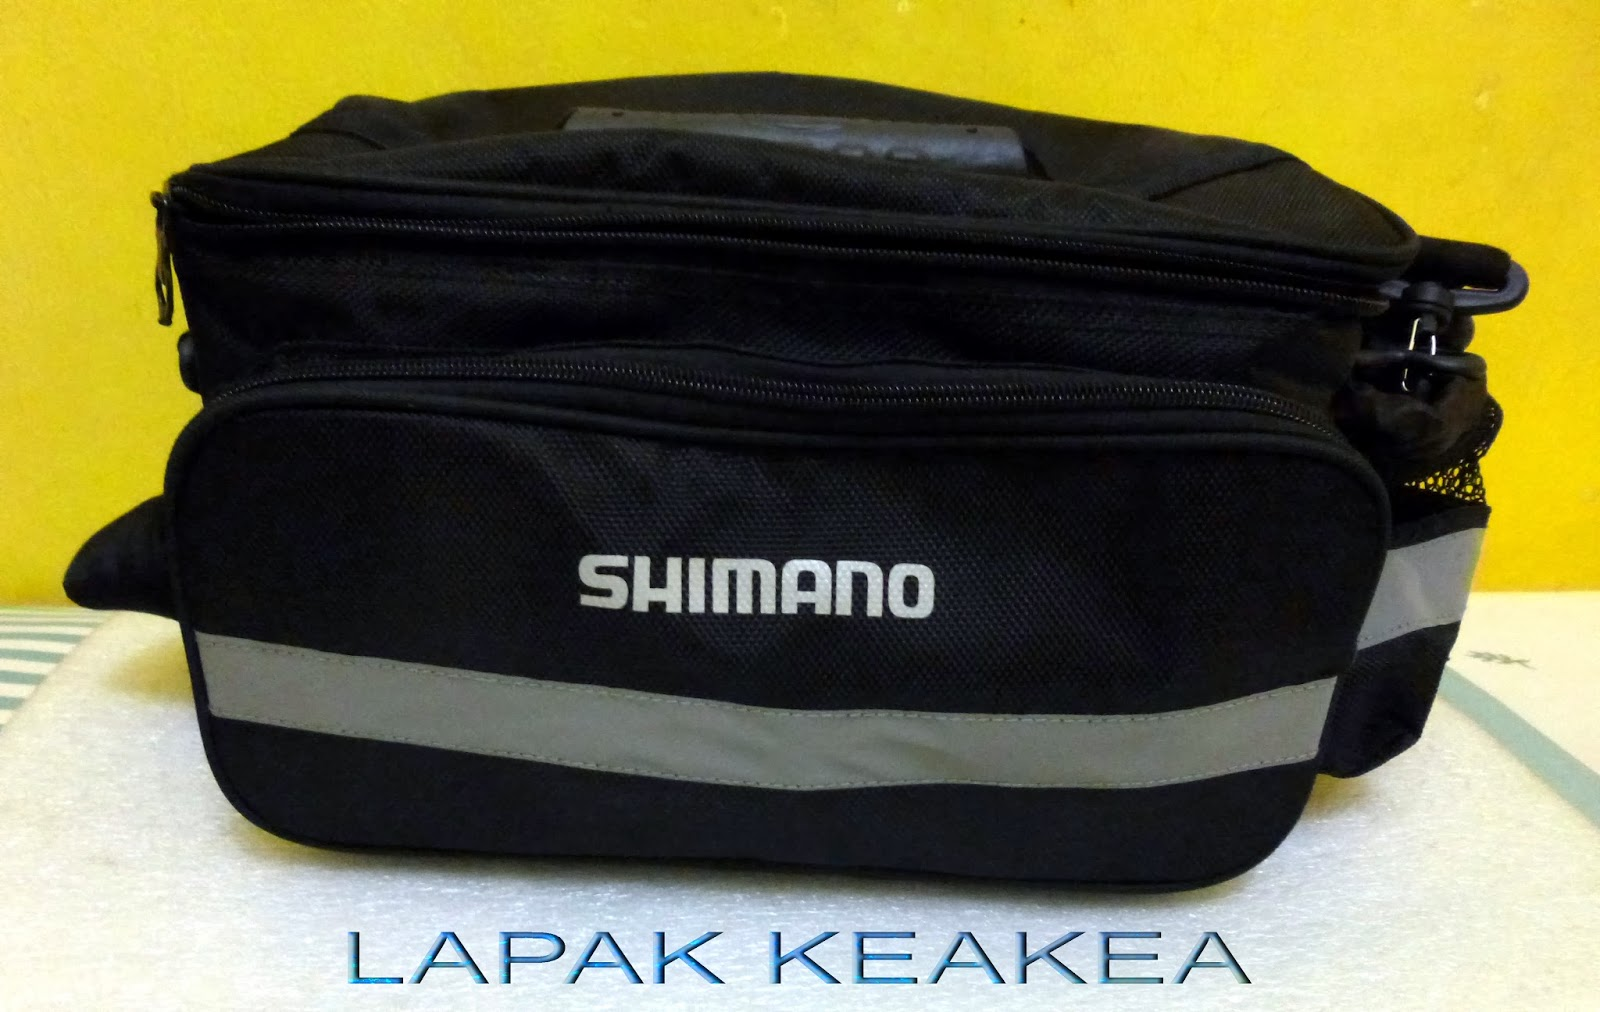 http://lapakkeakea.blogspot.com/search/label/tas%20touring%20shimano%20lokal